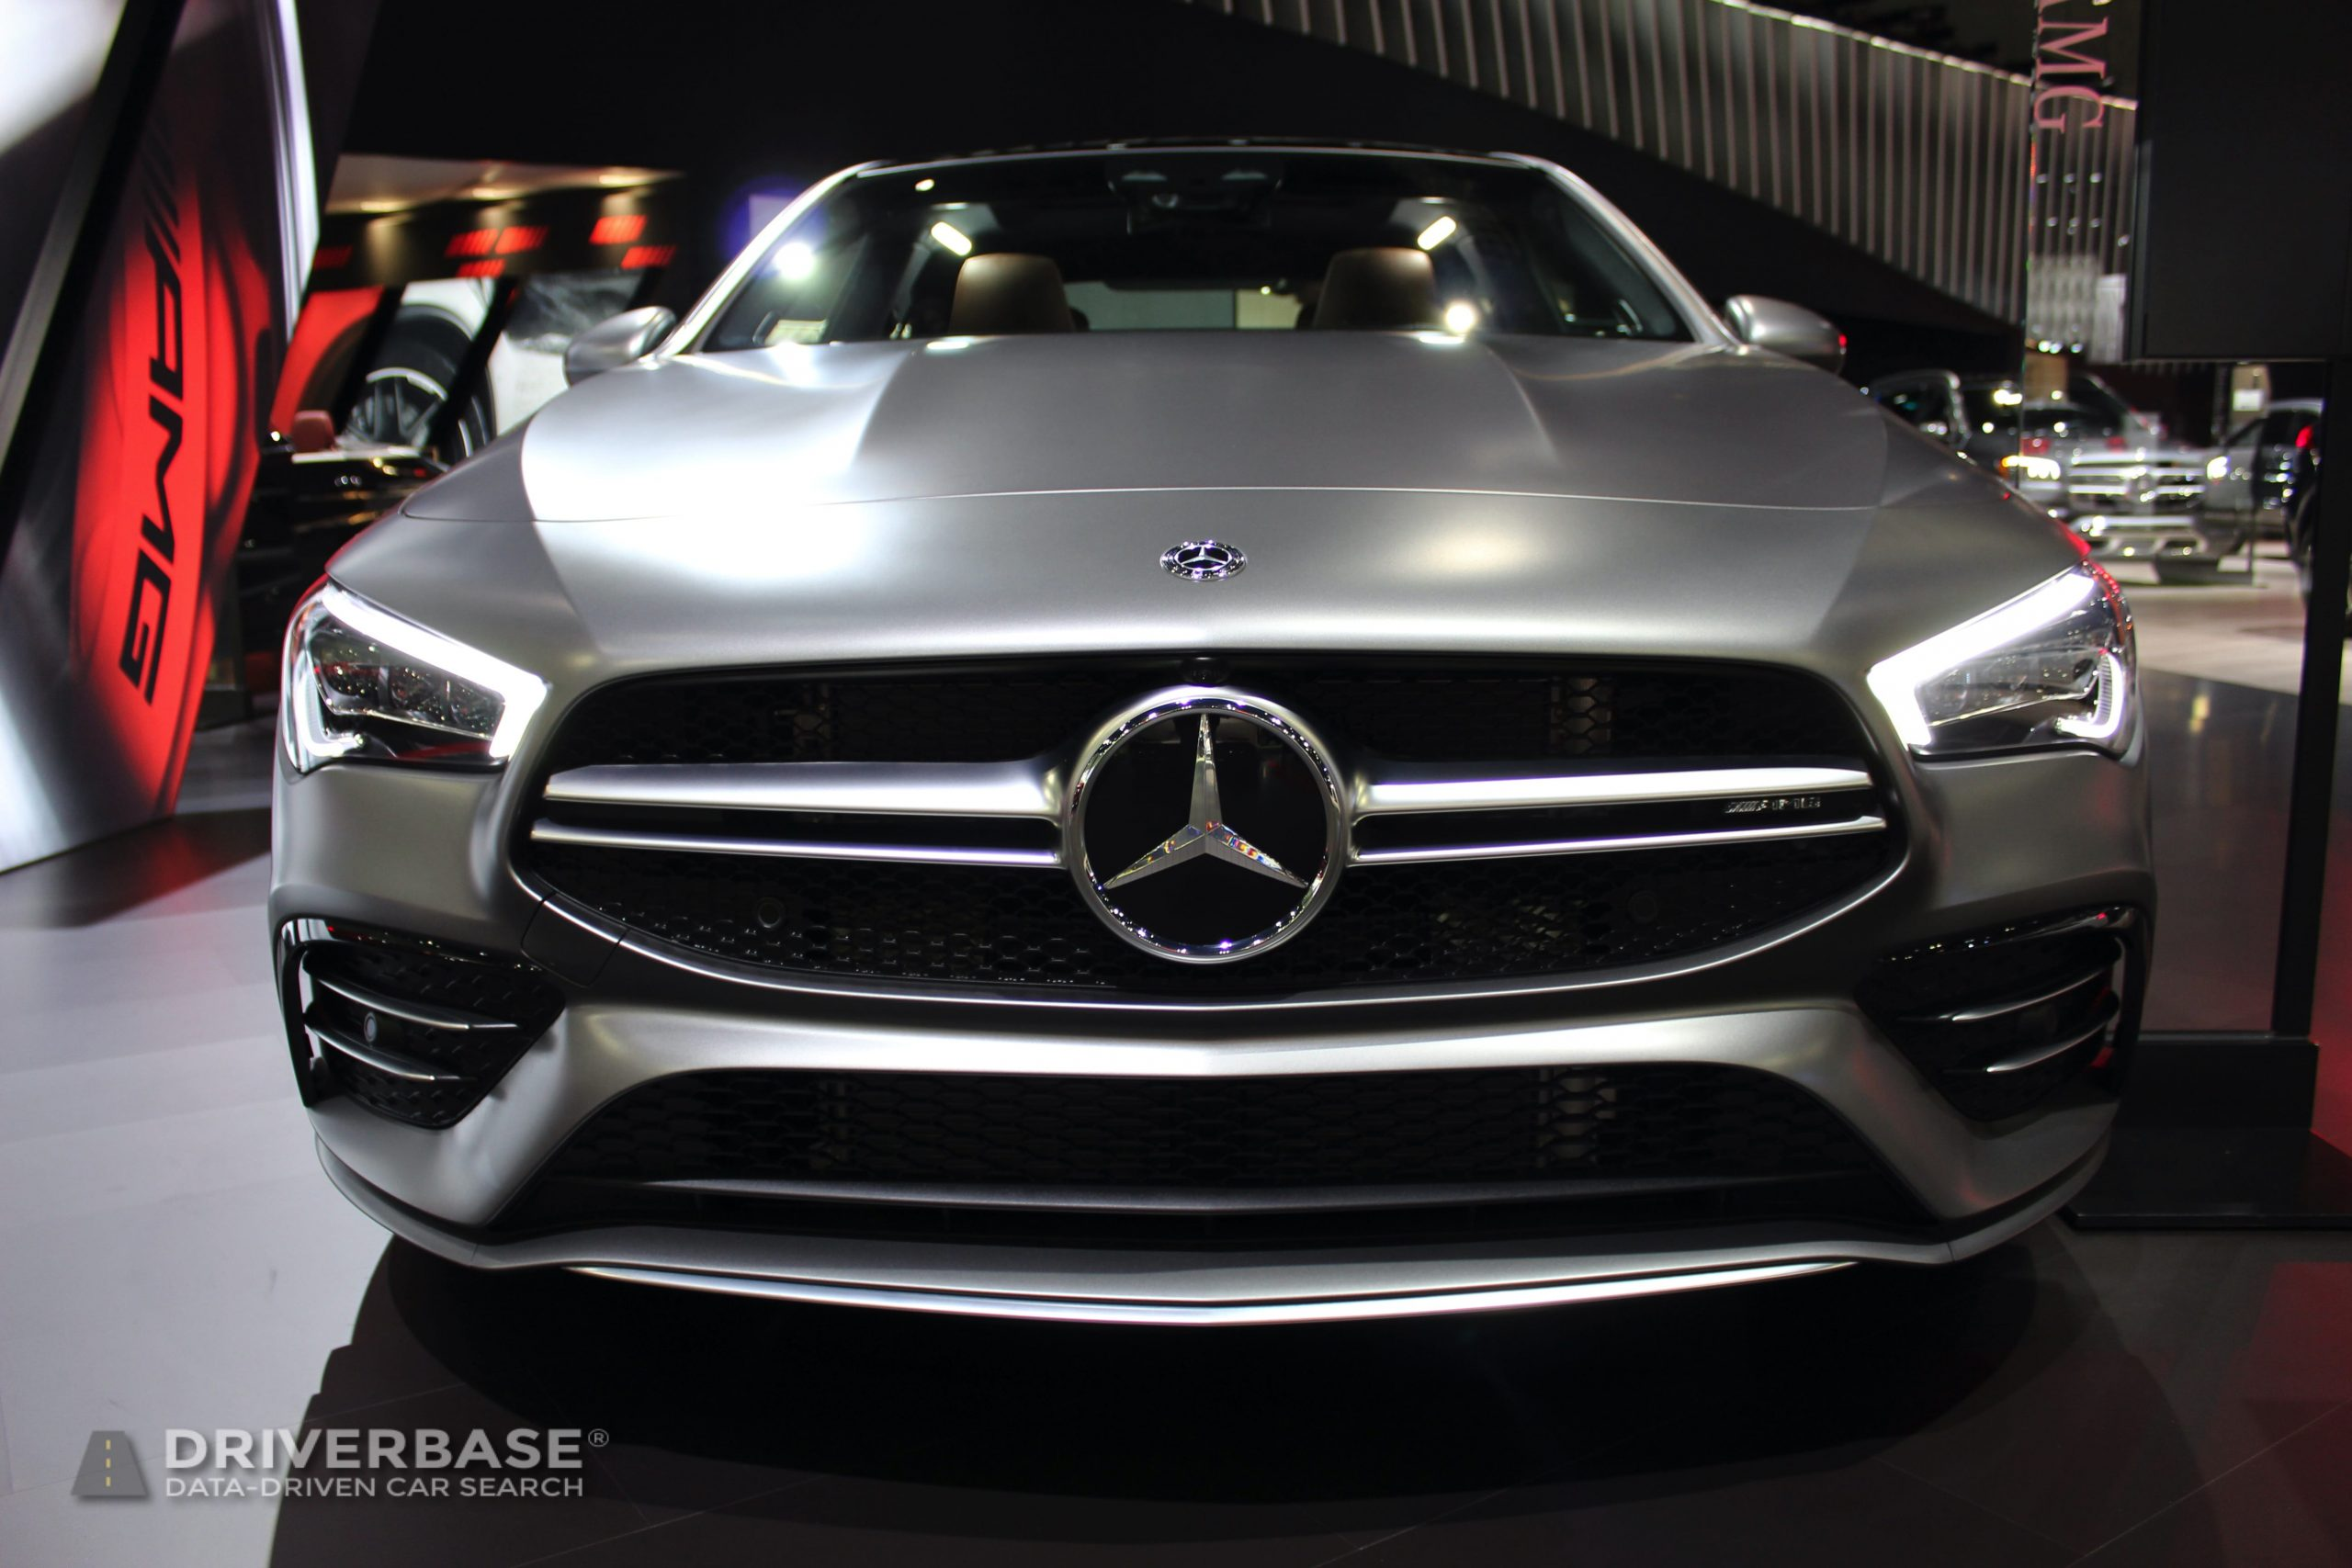 2020 Mercedes-Benz AMG CLA 35 at the 2019 Los Angeles Auto Show